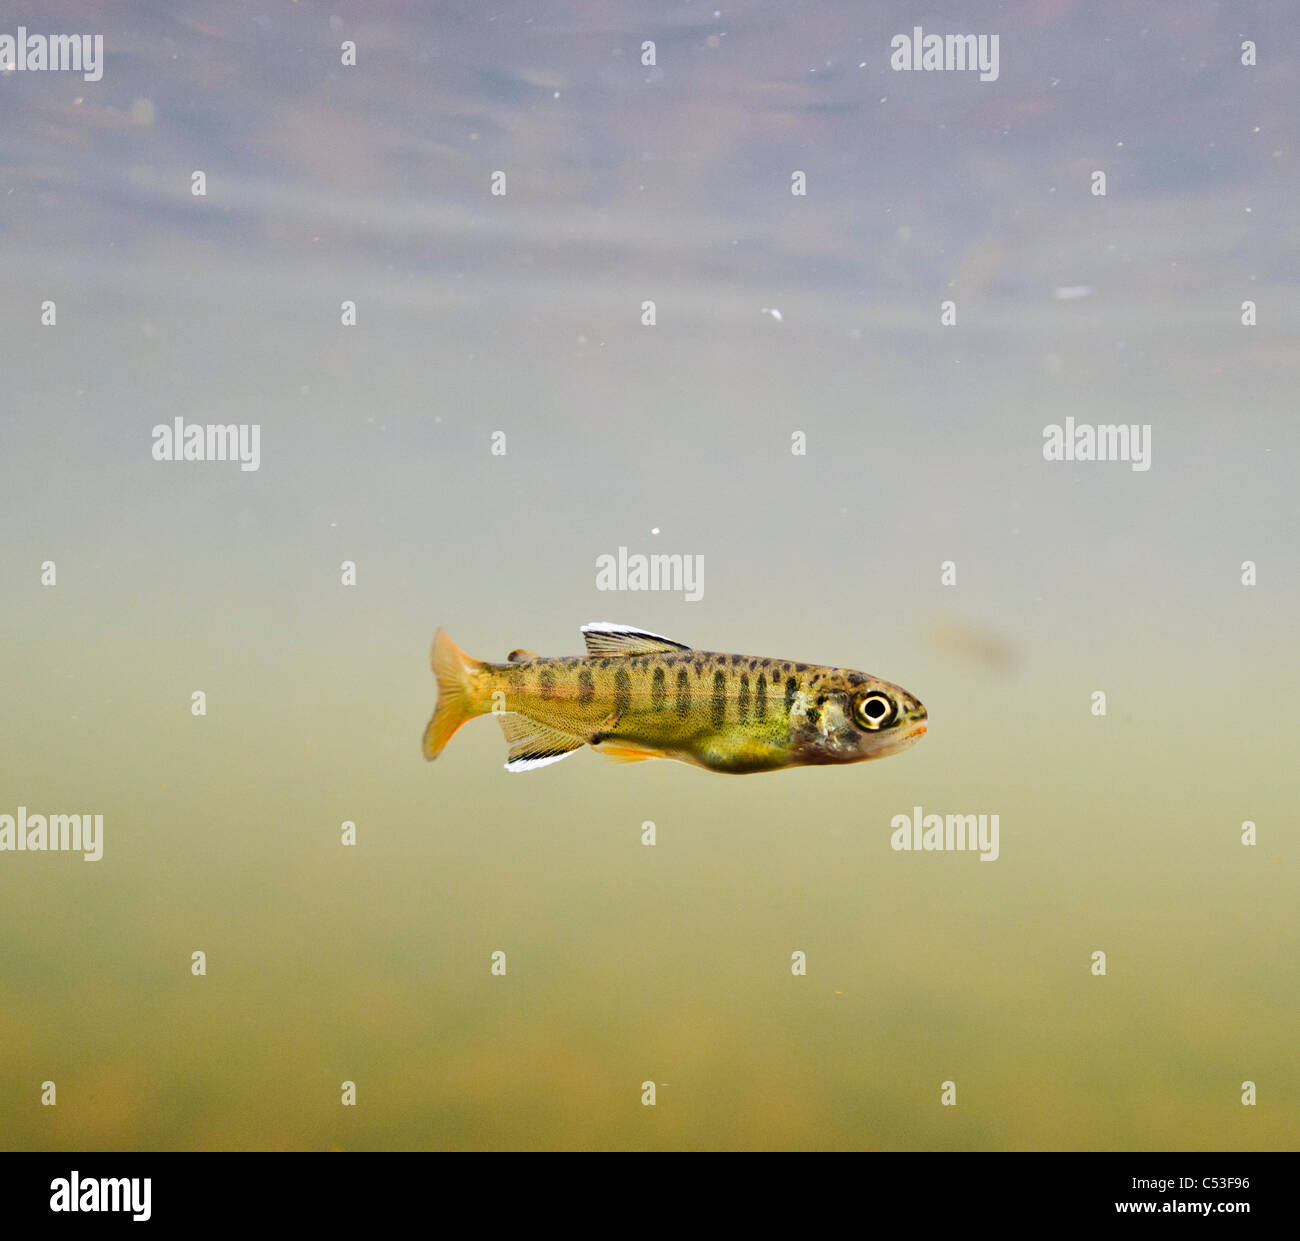 Underwater view of a recently emerged coho salmon fry rearing in 18-mile Creek, Copper River Delta, Alaska. - Stock Image